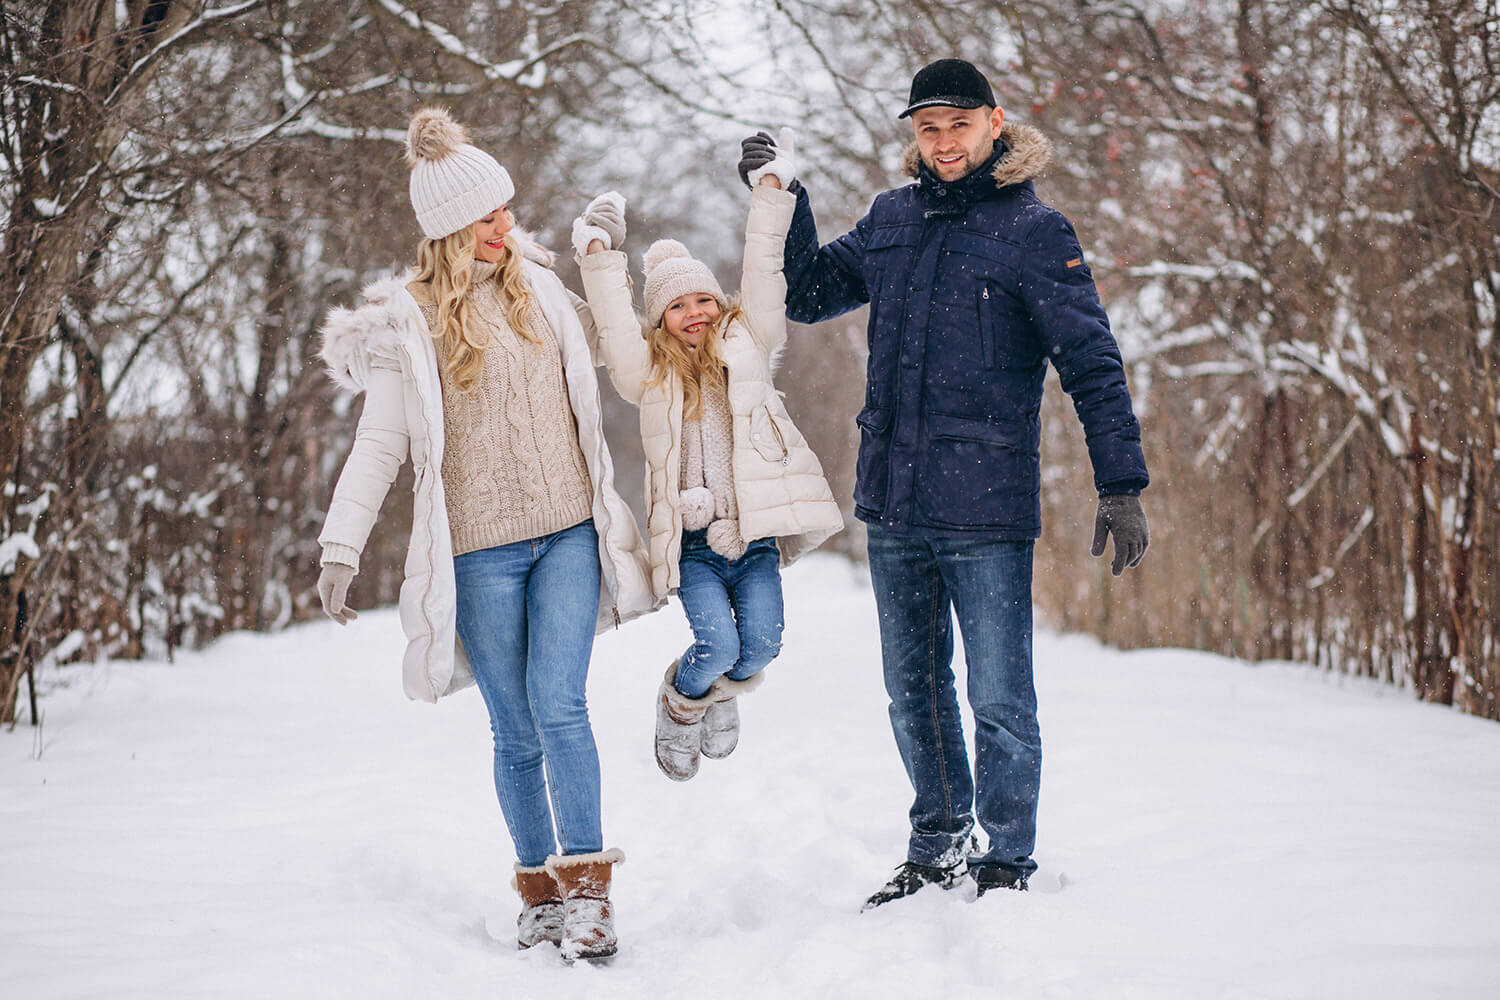 Blog - Top 5 Things to Do In Your New Home In Winter in Iowa - Walk